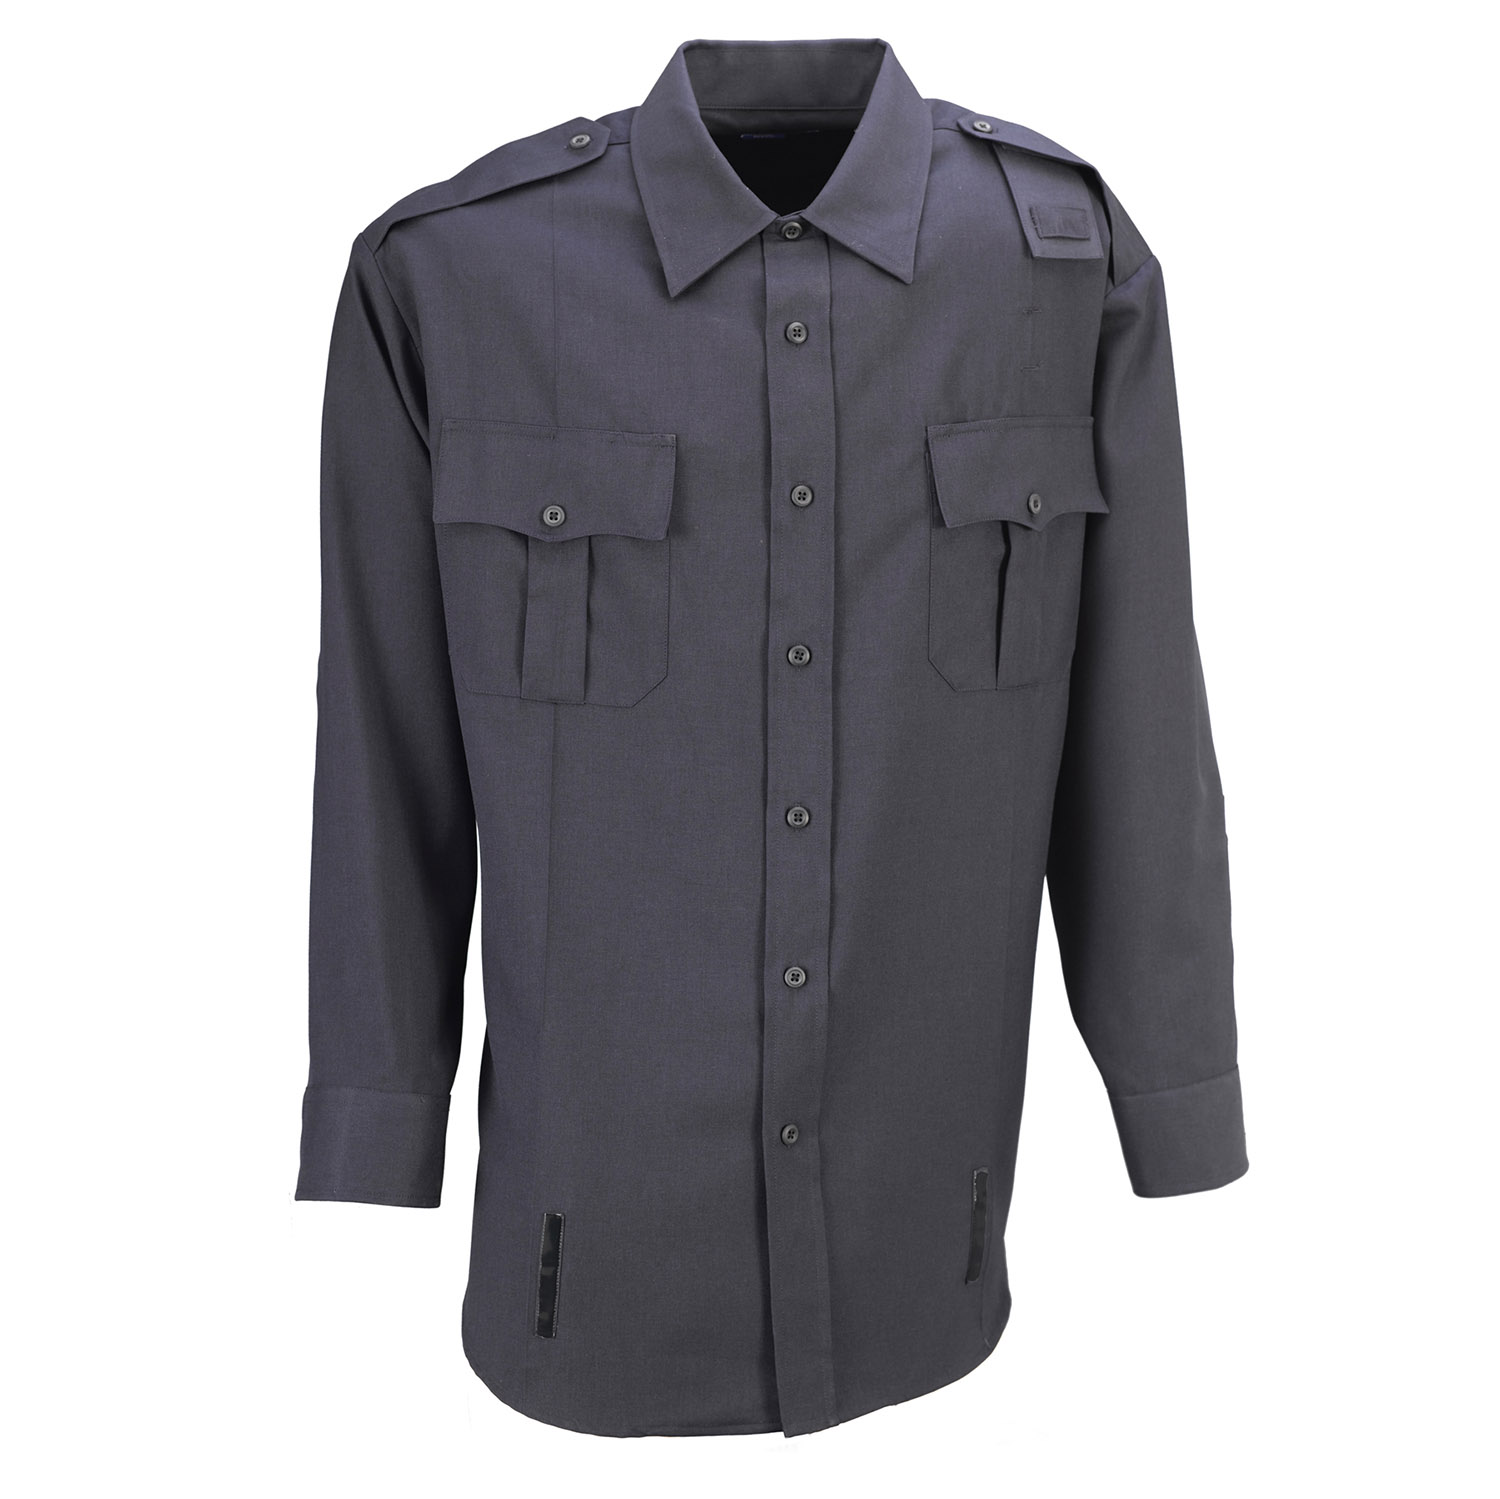 Spiewak Men's Premium Polyester Long Sleeve Performance Duty